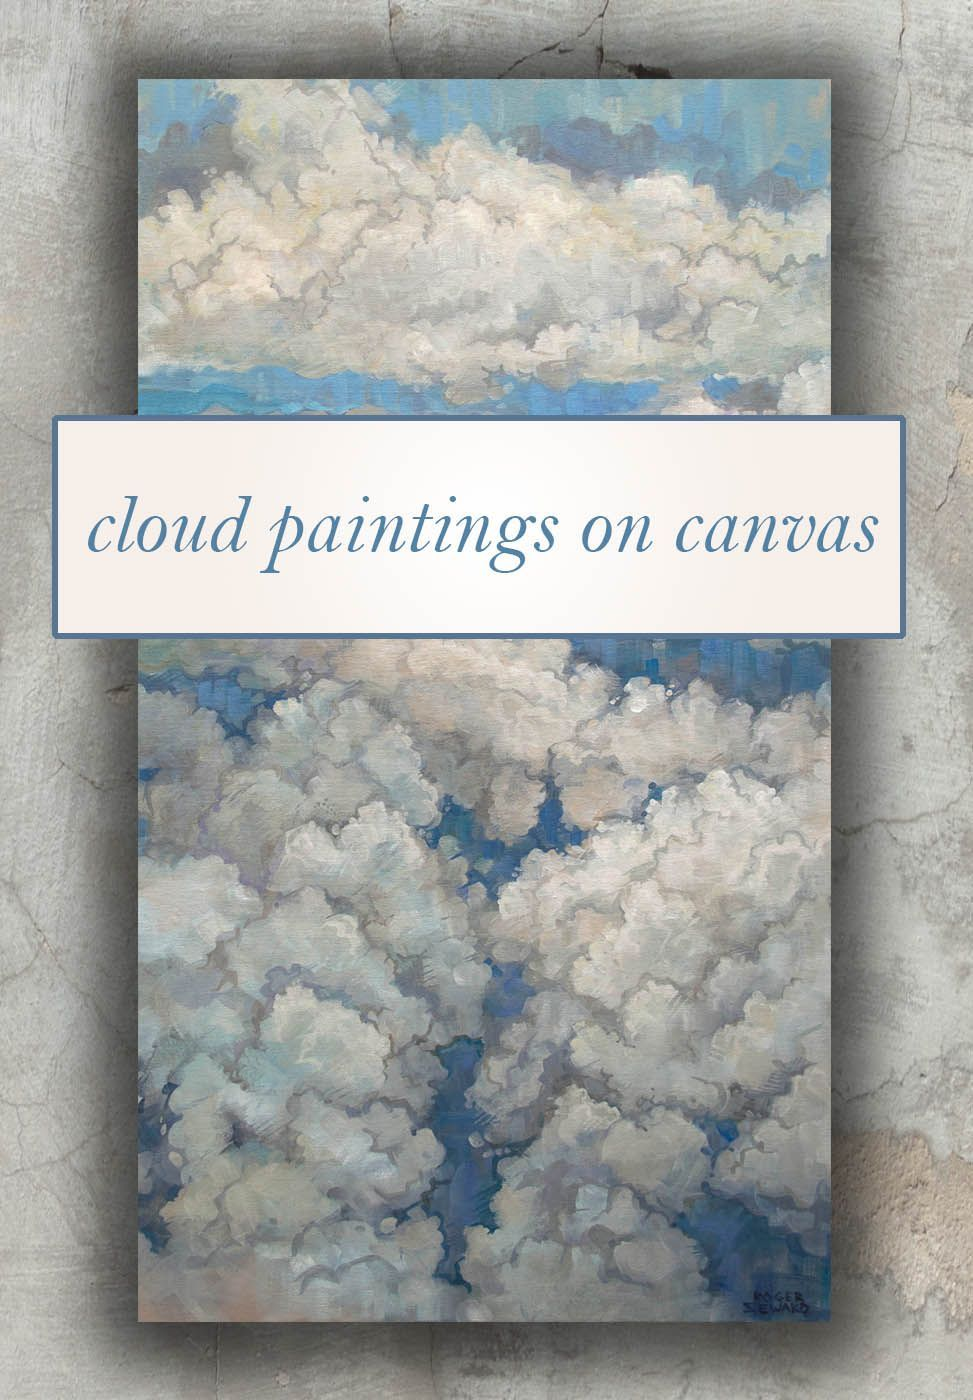 Original paintings of clouds on canvas. Great wall art for many styles of home decor! Prints available. Browse available works at my site, thanks for looking!